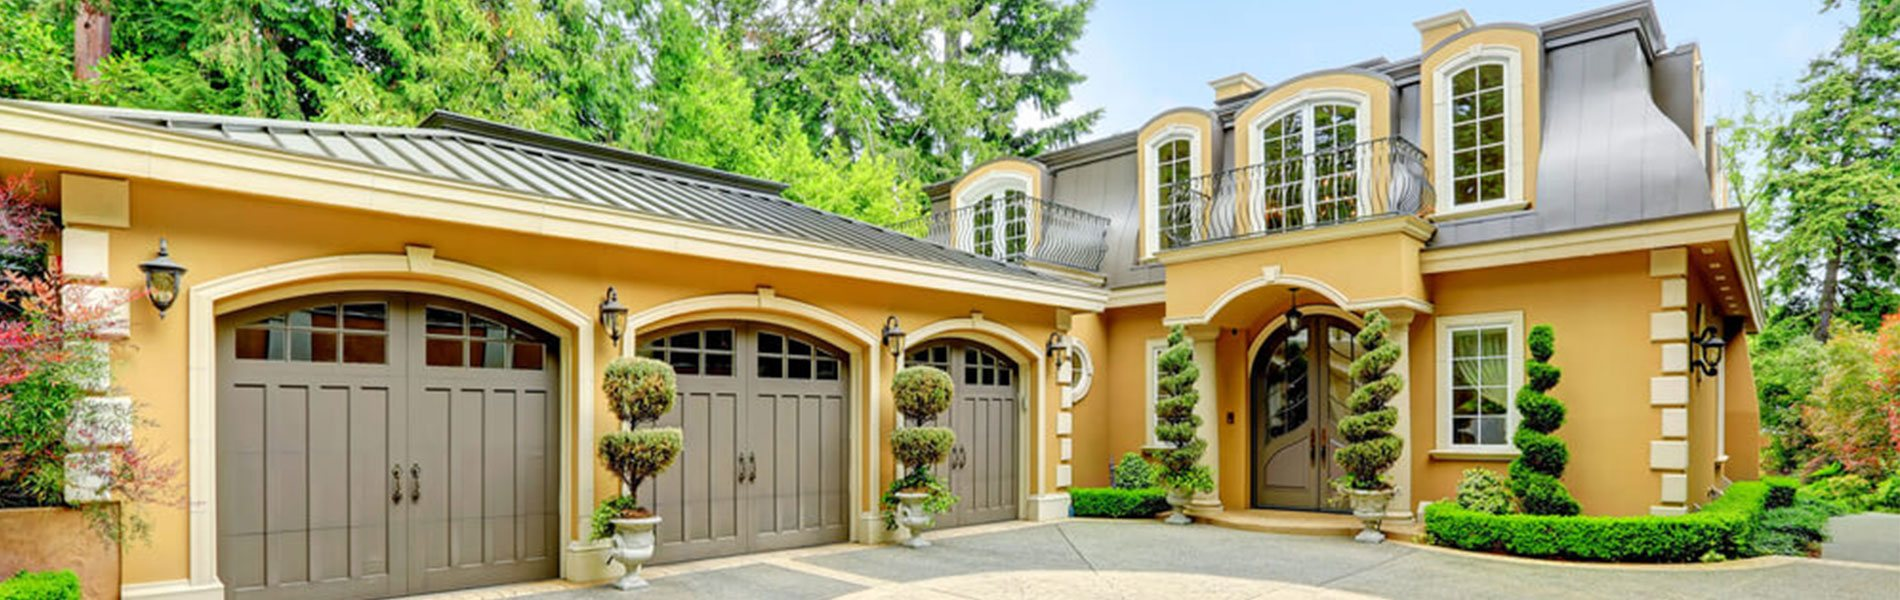 Interstate Garage Door Repair Service, Germantown, MD 301-338-6683